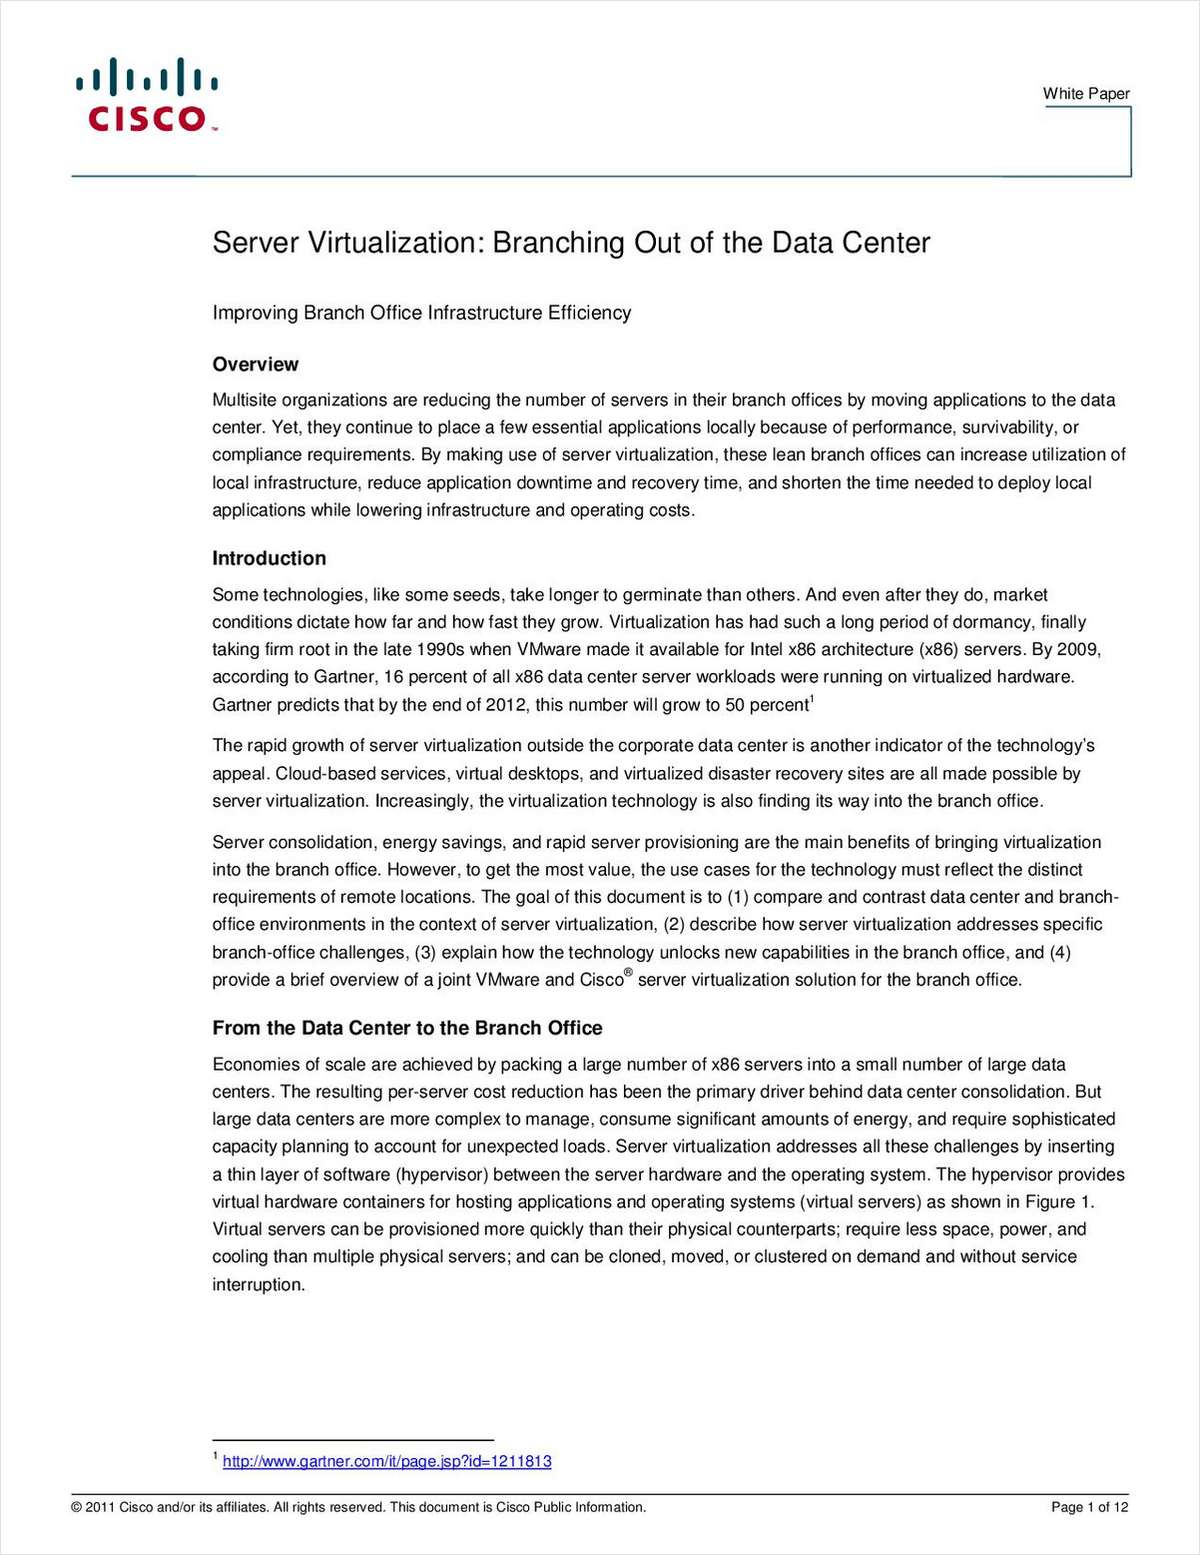 Server Virtualization: Branching Out of the Data Center